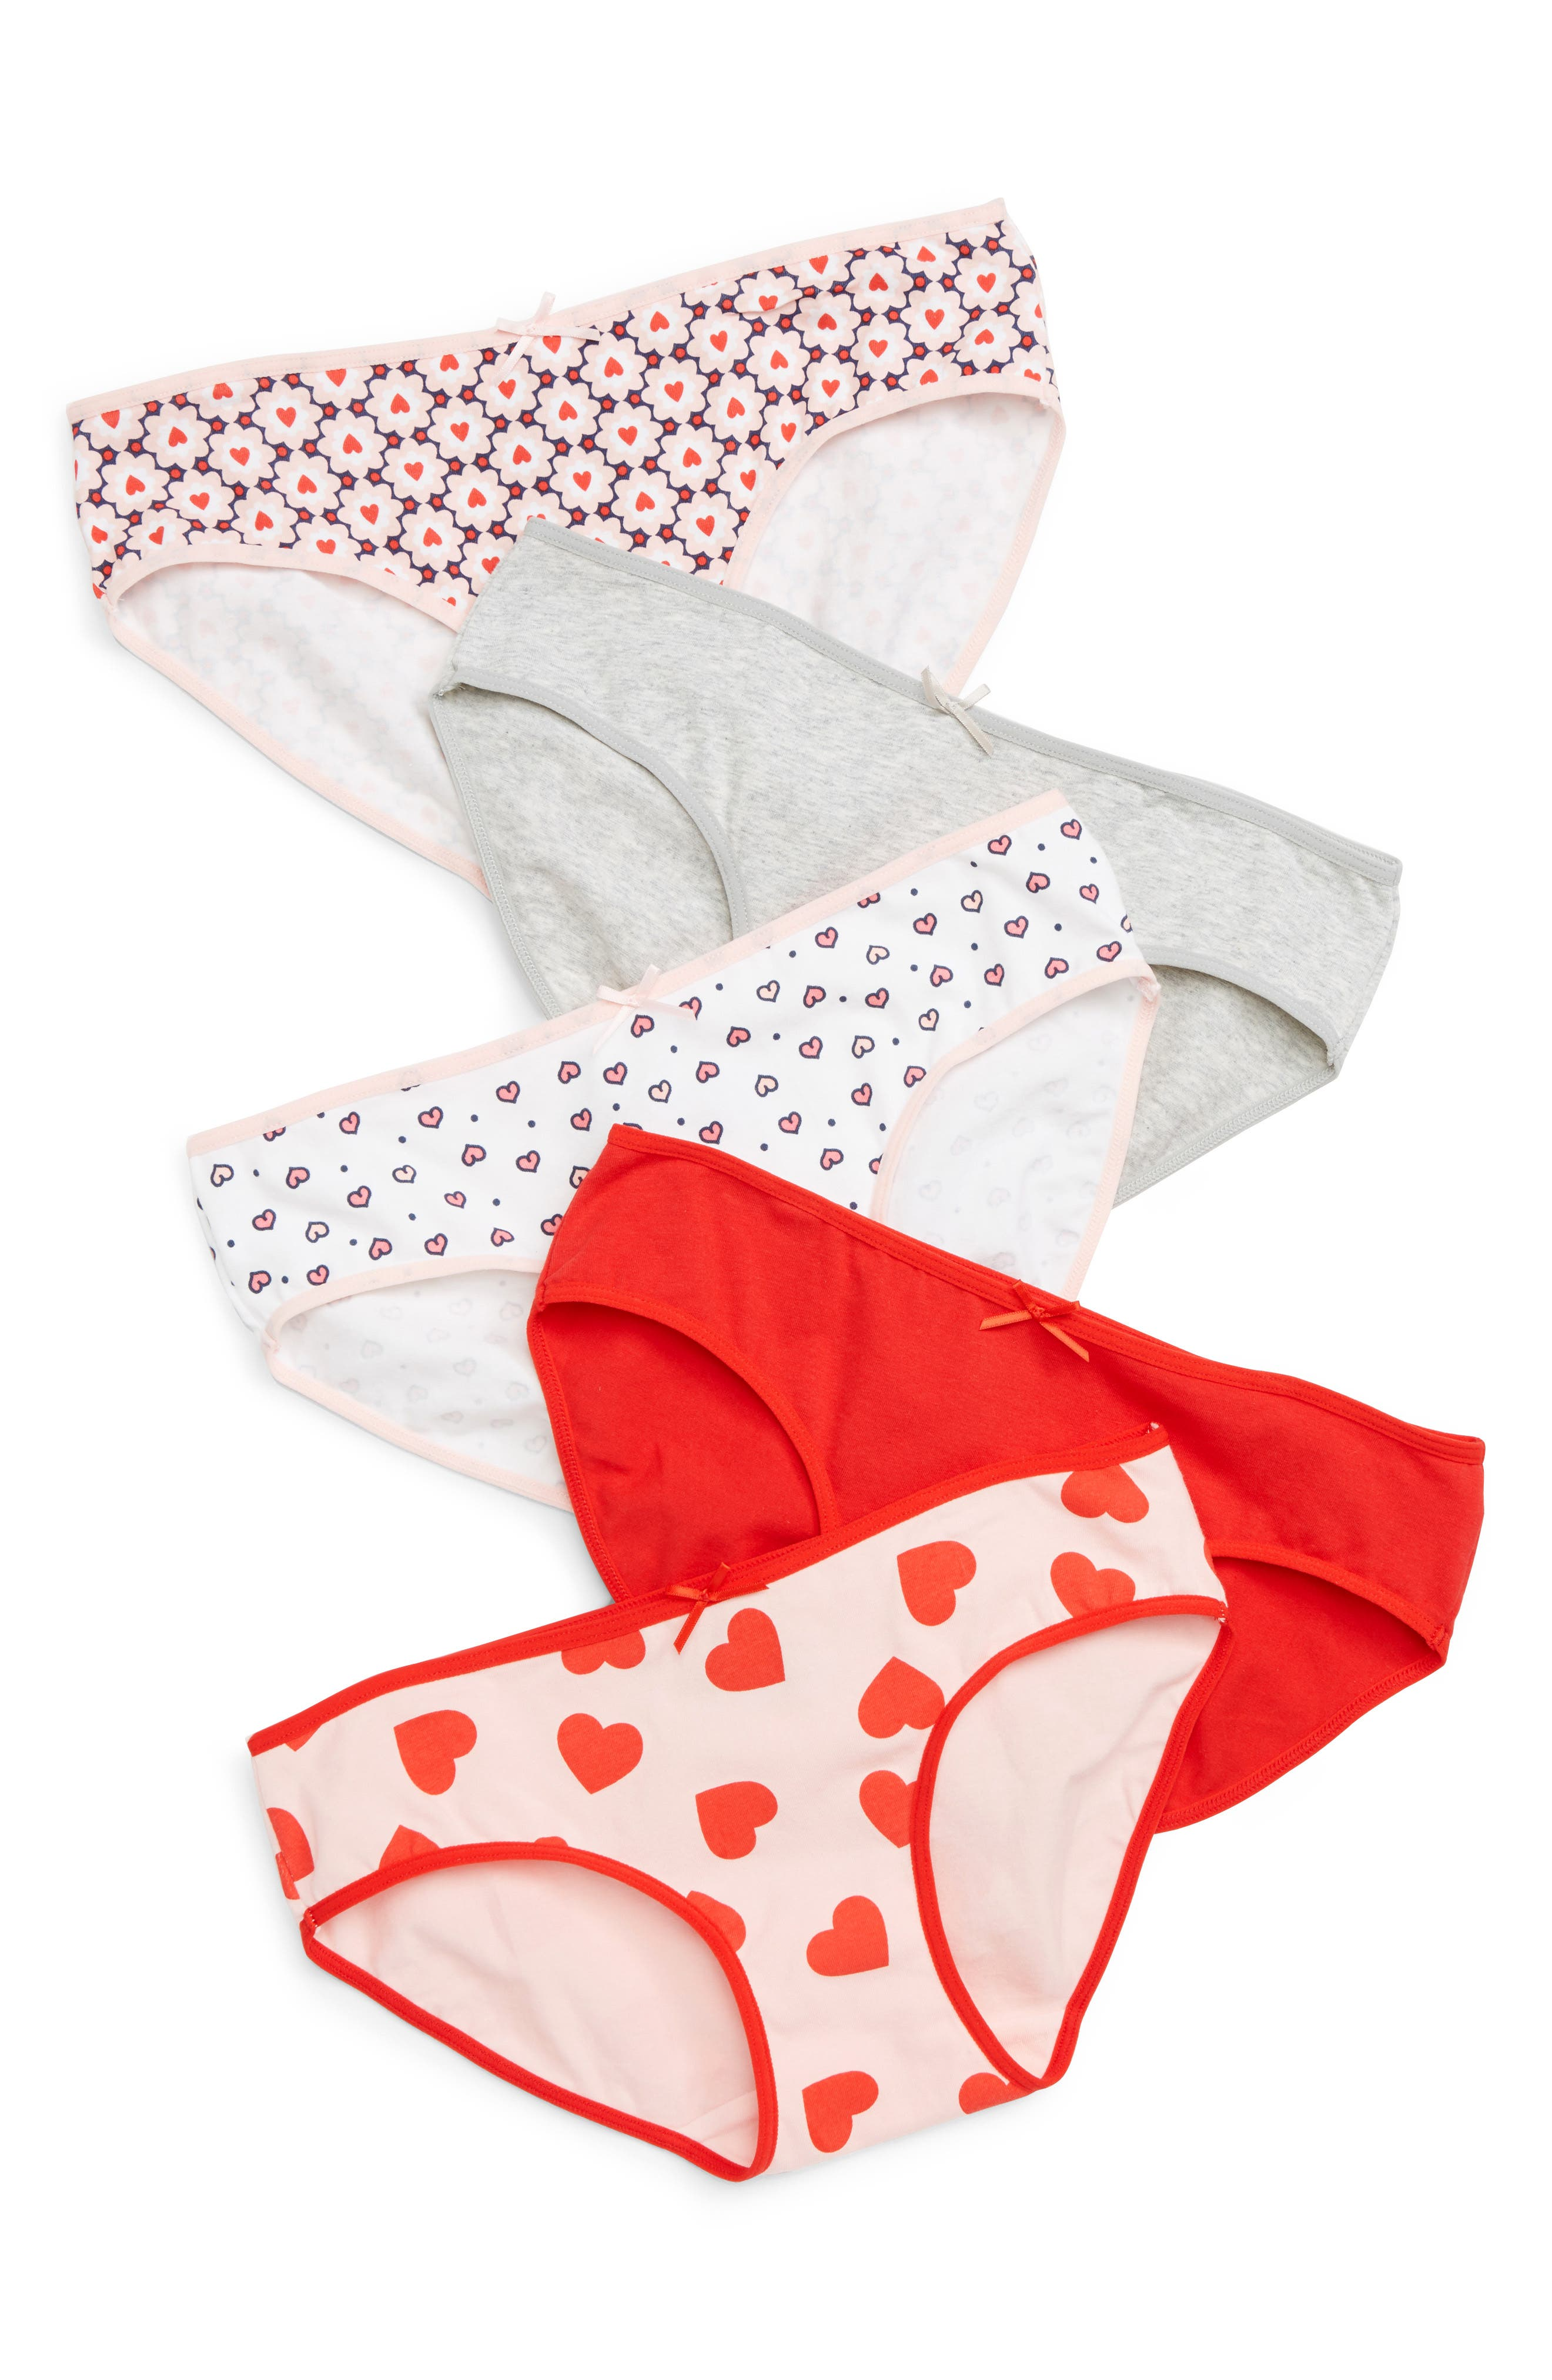 5-Pack Hipster Briefs,                             Main thumbnail 1, color,                             MODERN HEART PACK